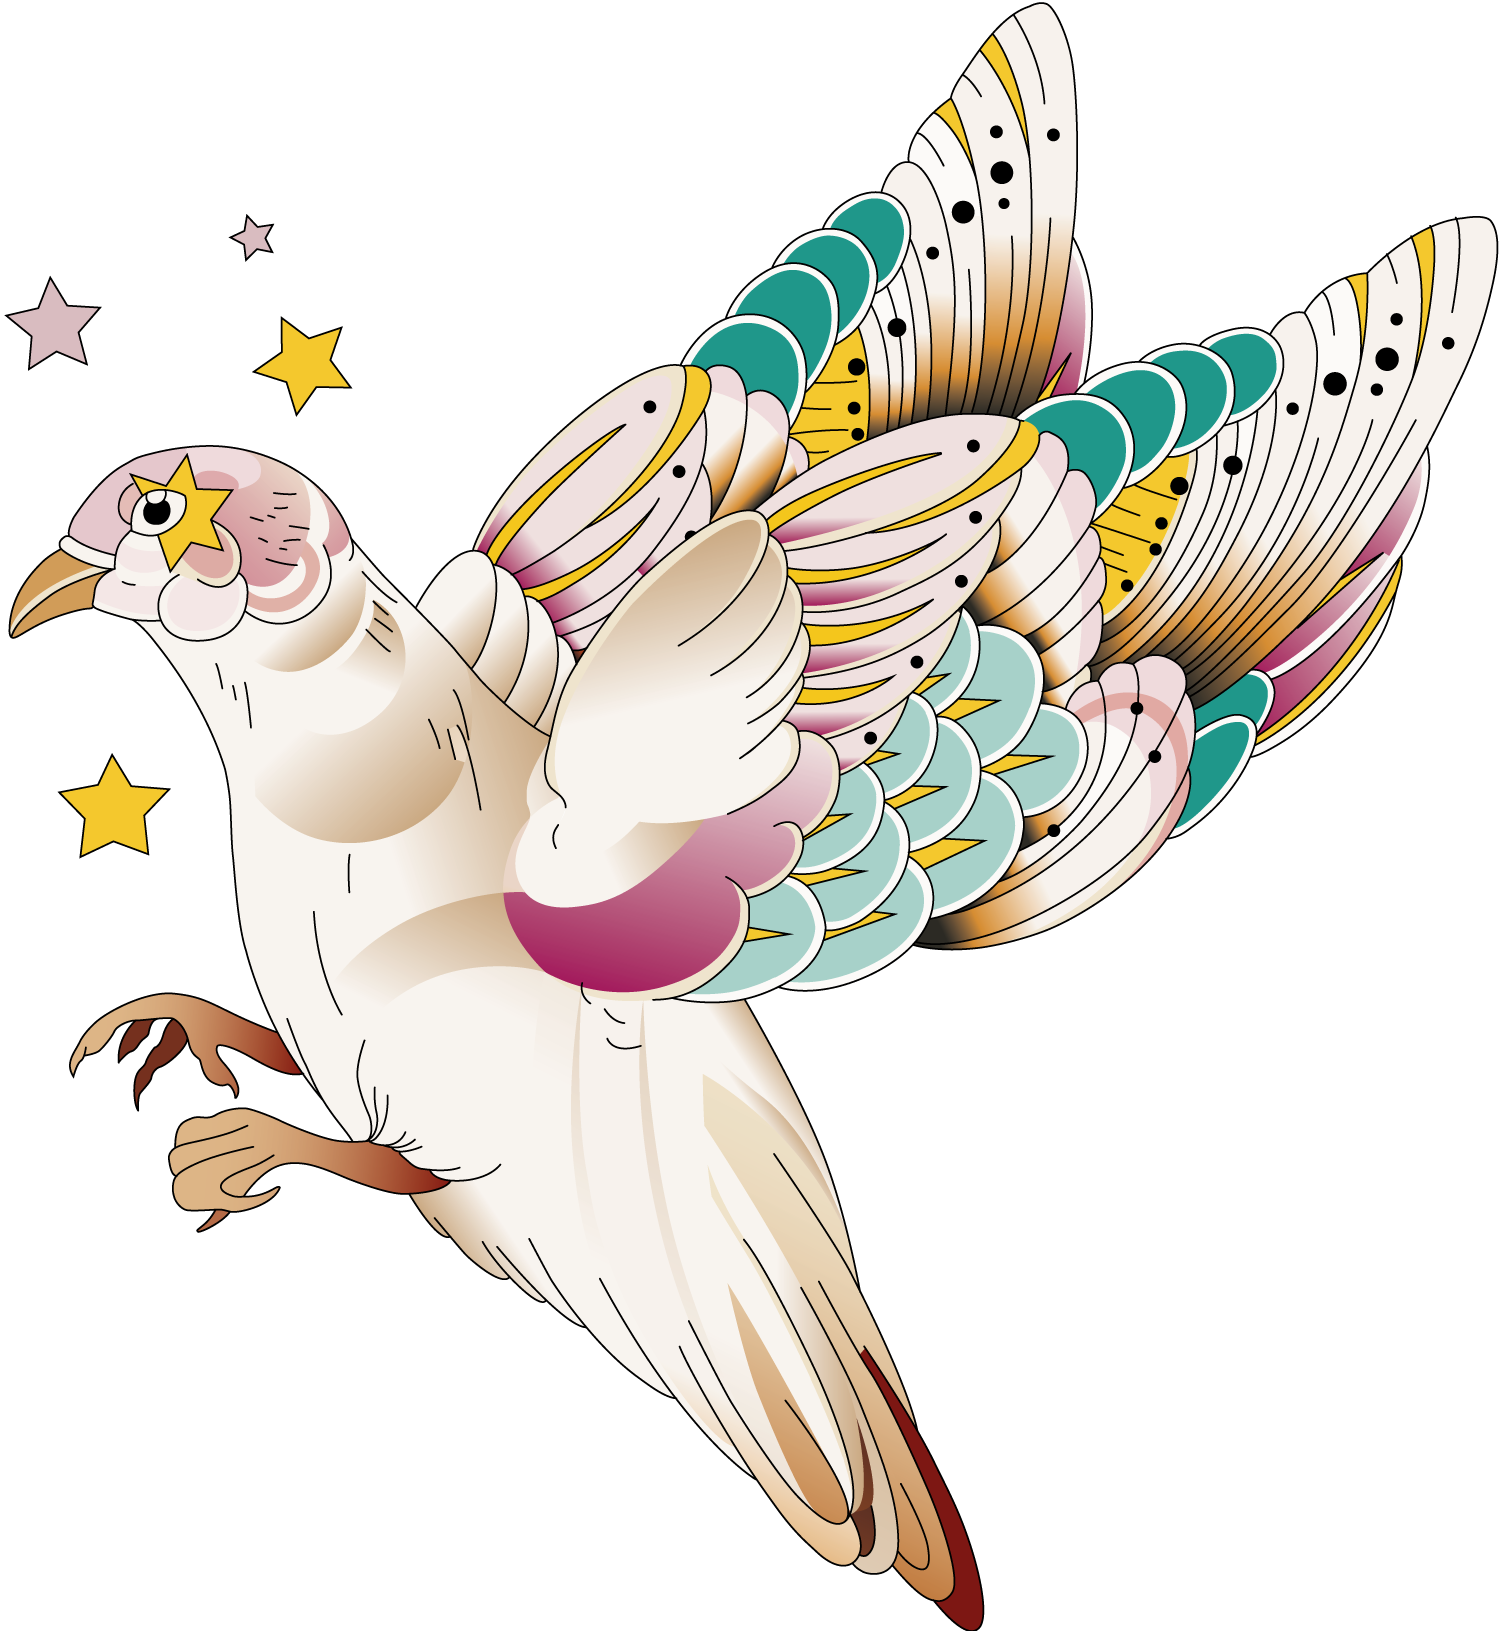 An illustrated Paloma dove in flight